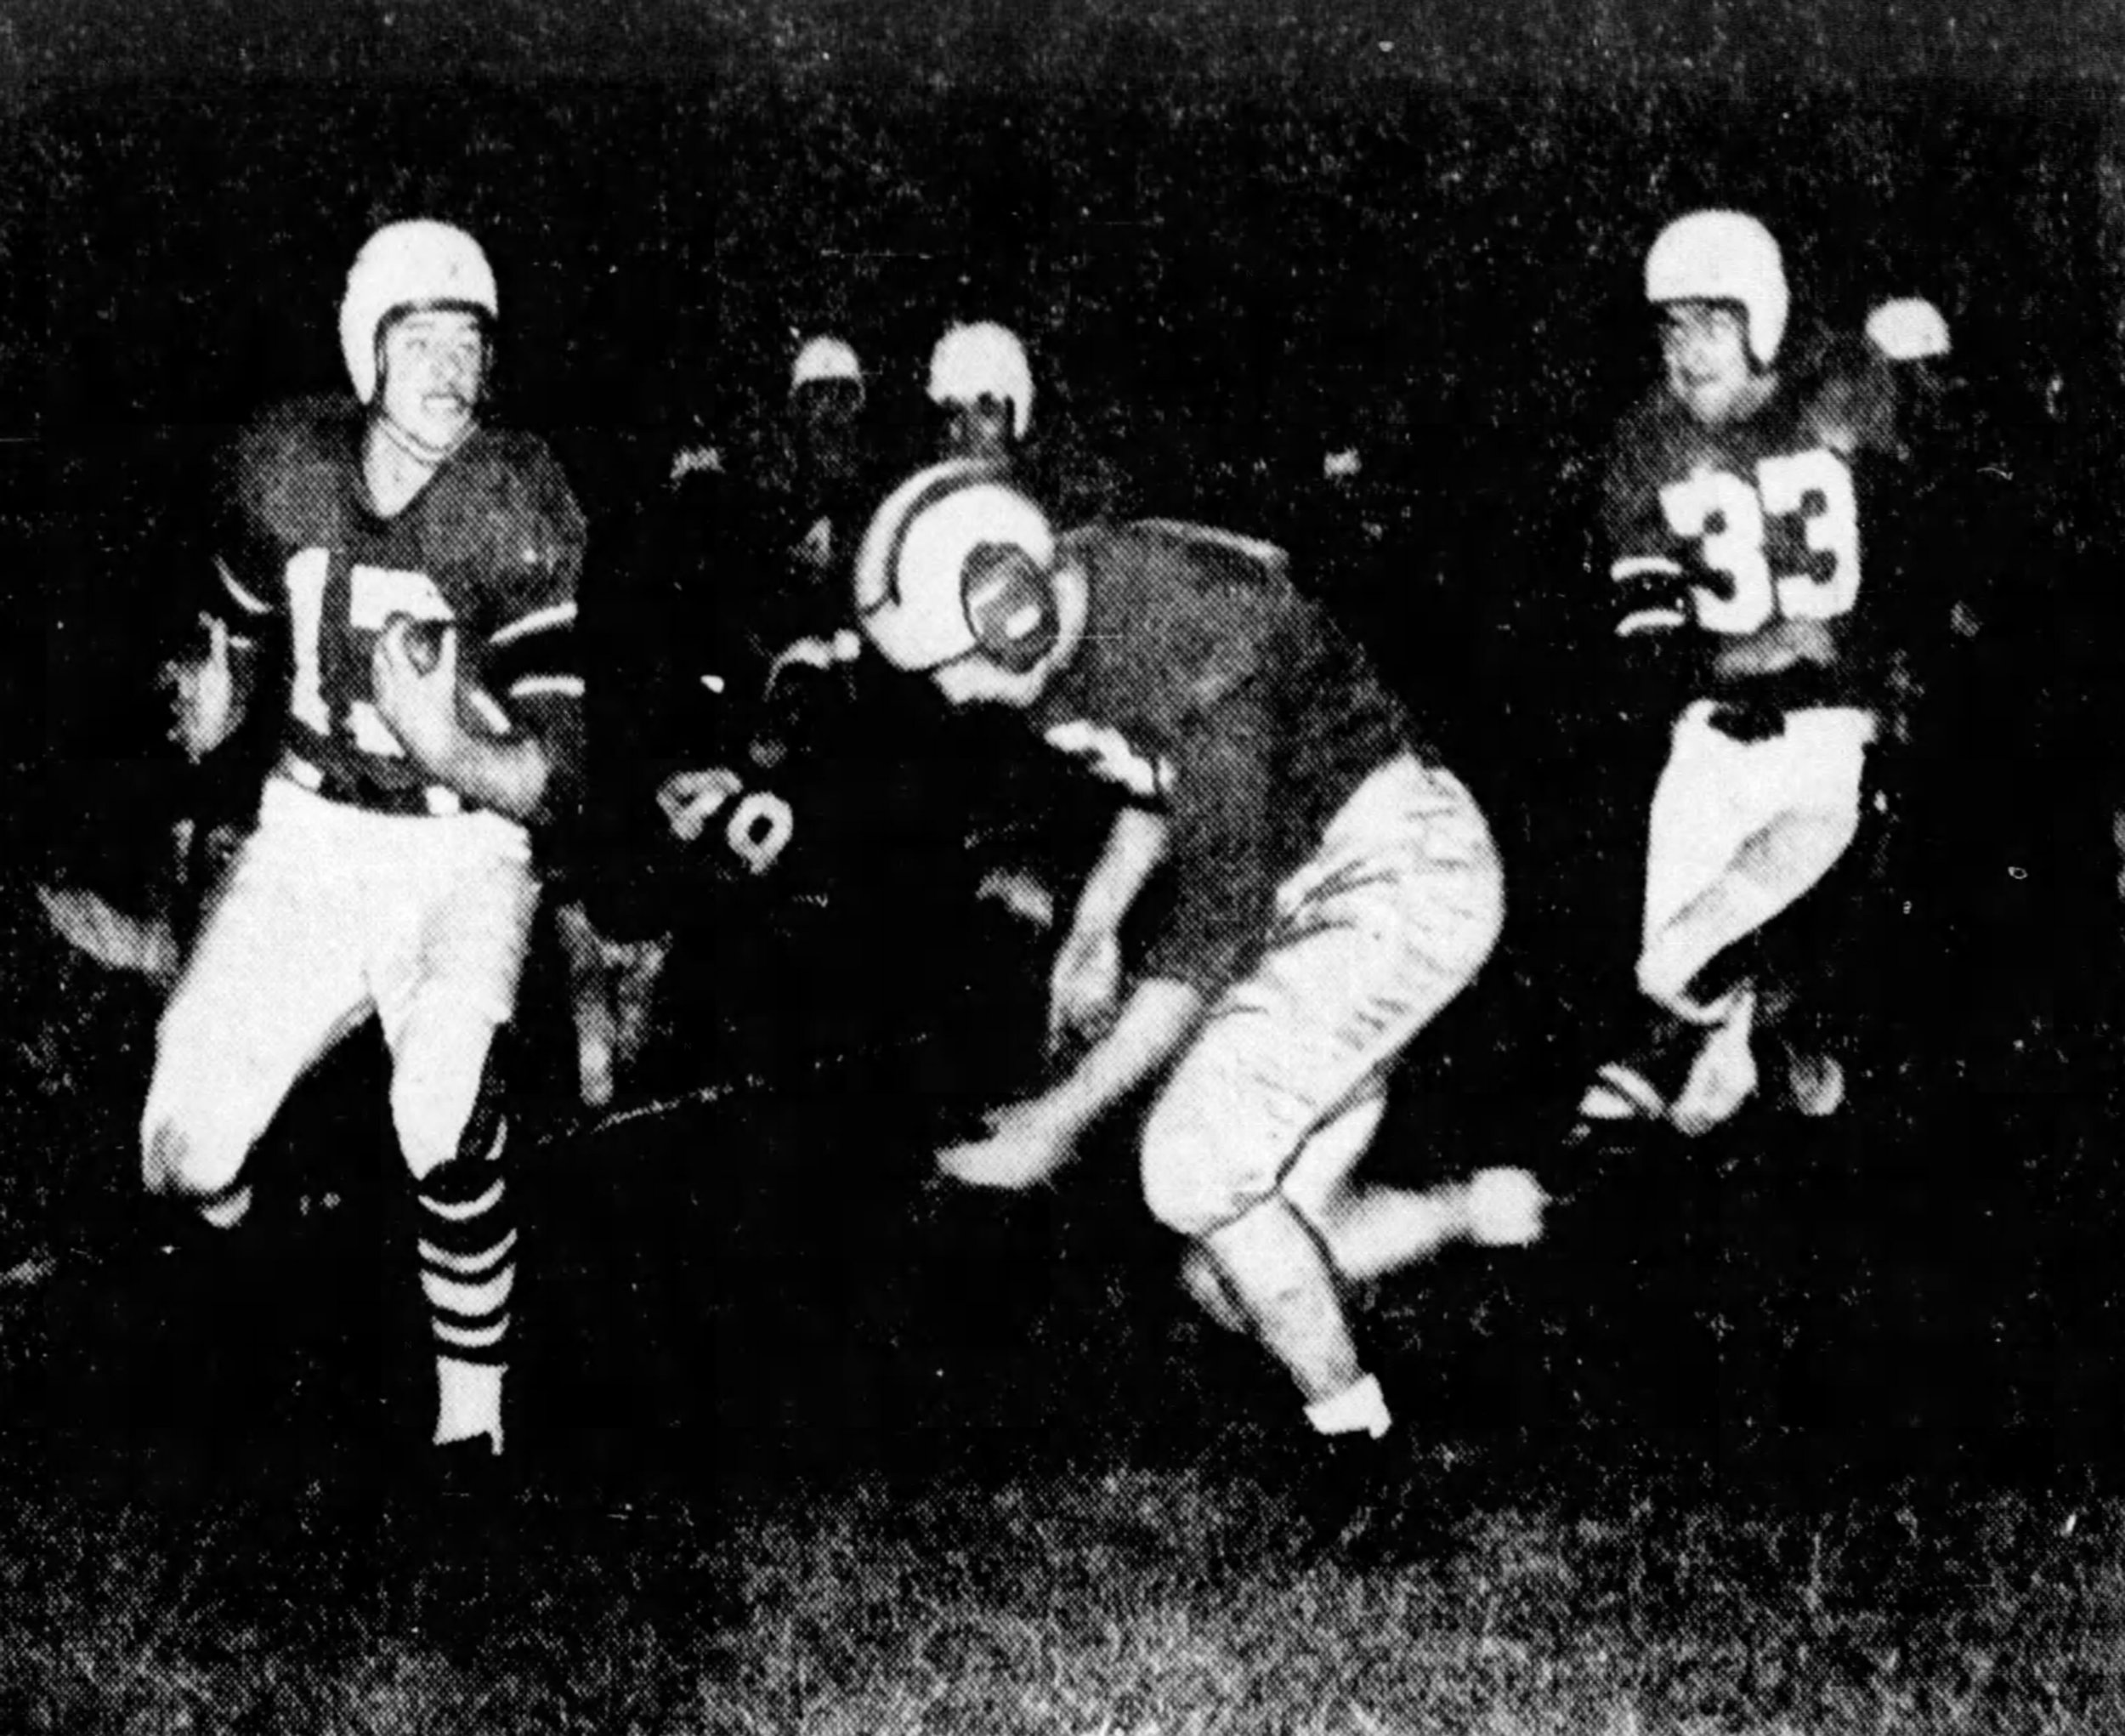 The Bearcats carry the ball on the game's opening play. To the right, #33 is Bearcat (and future Steeler) legend Elbie Nickel. (Enquirer)